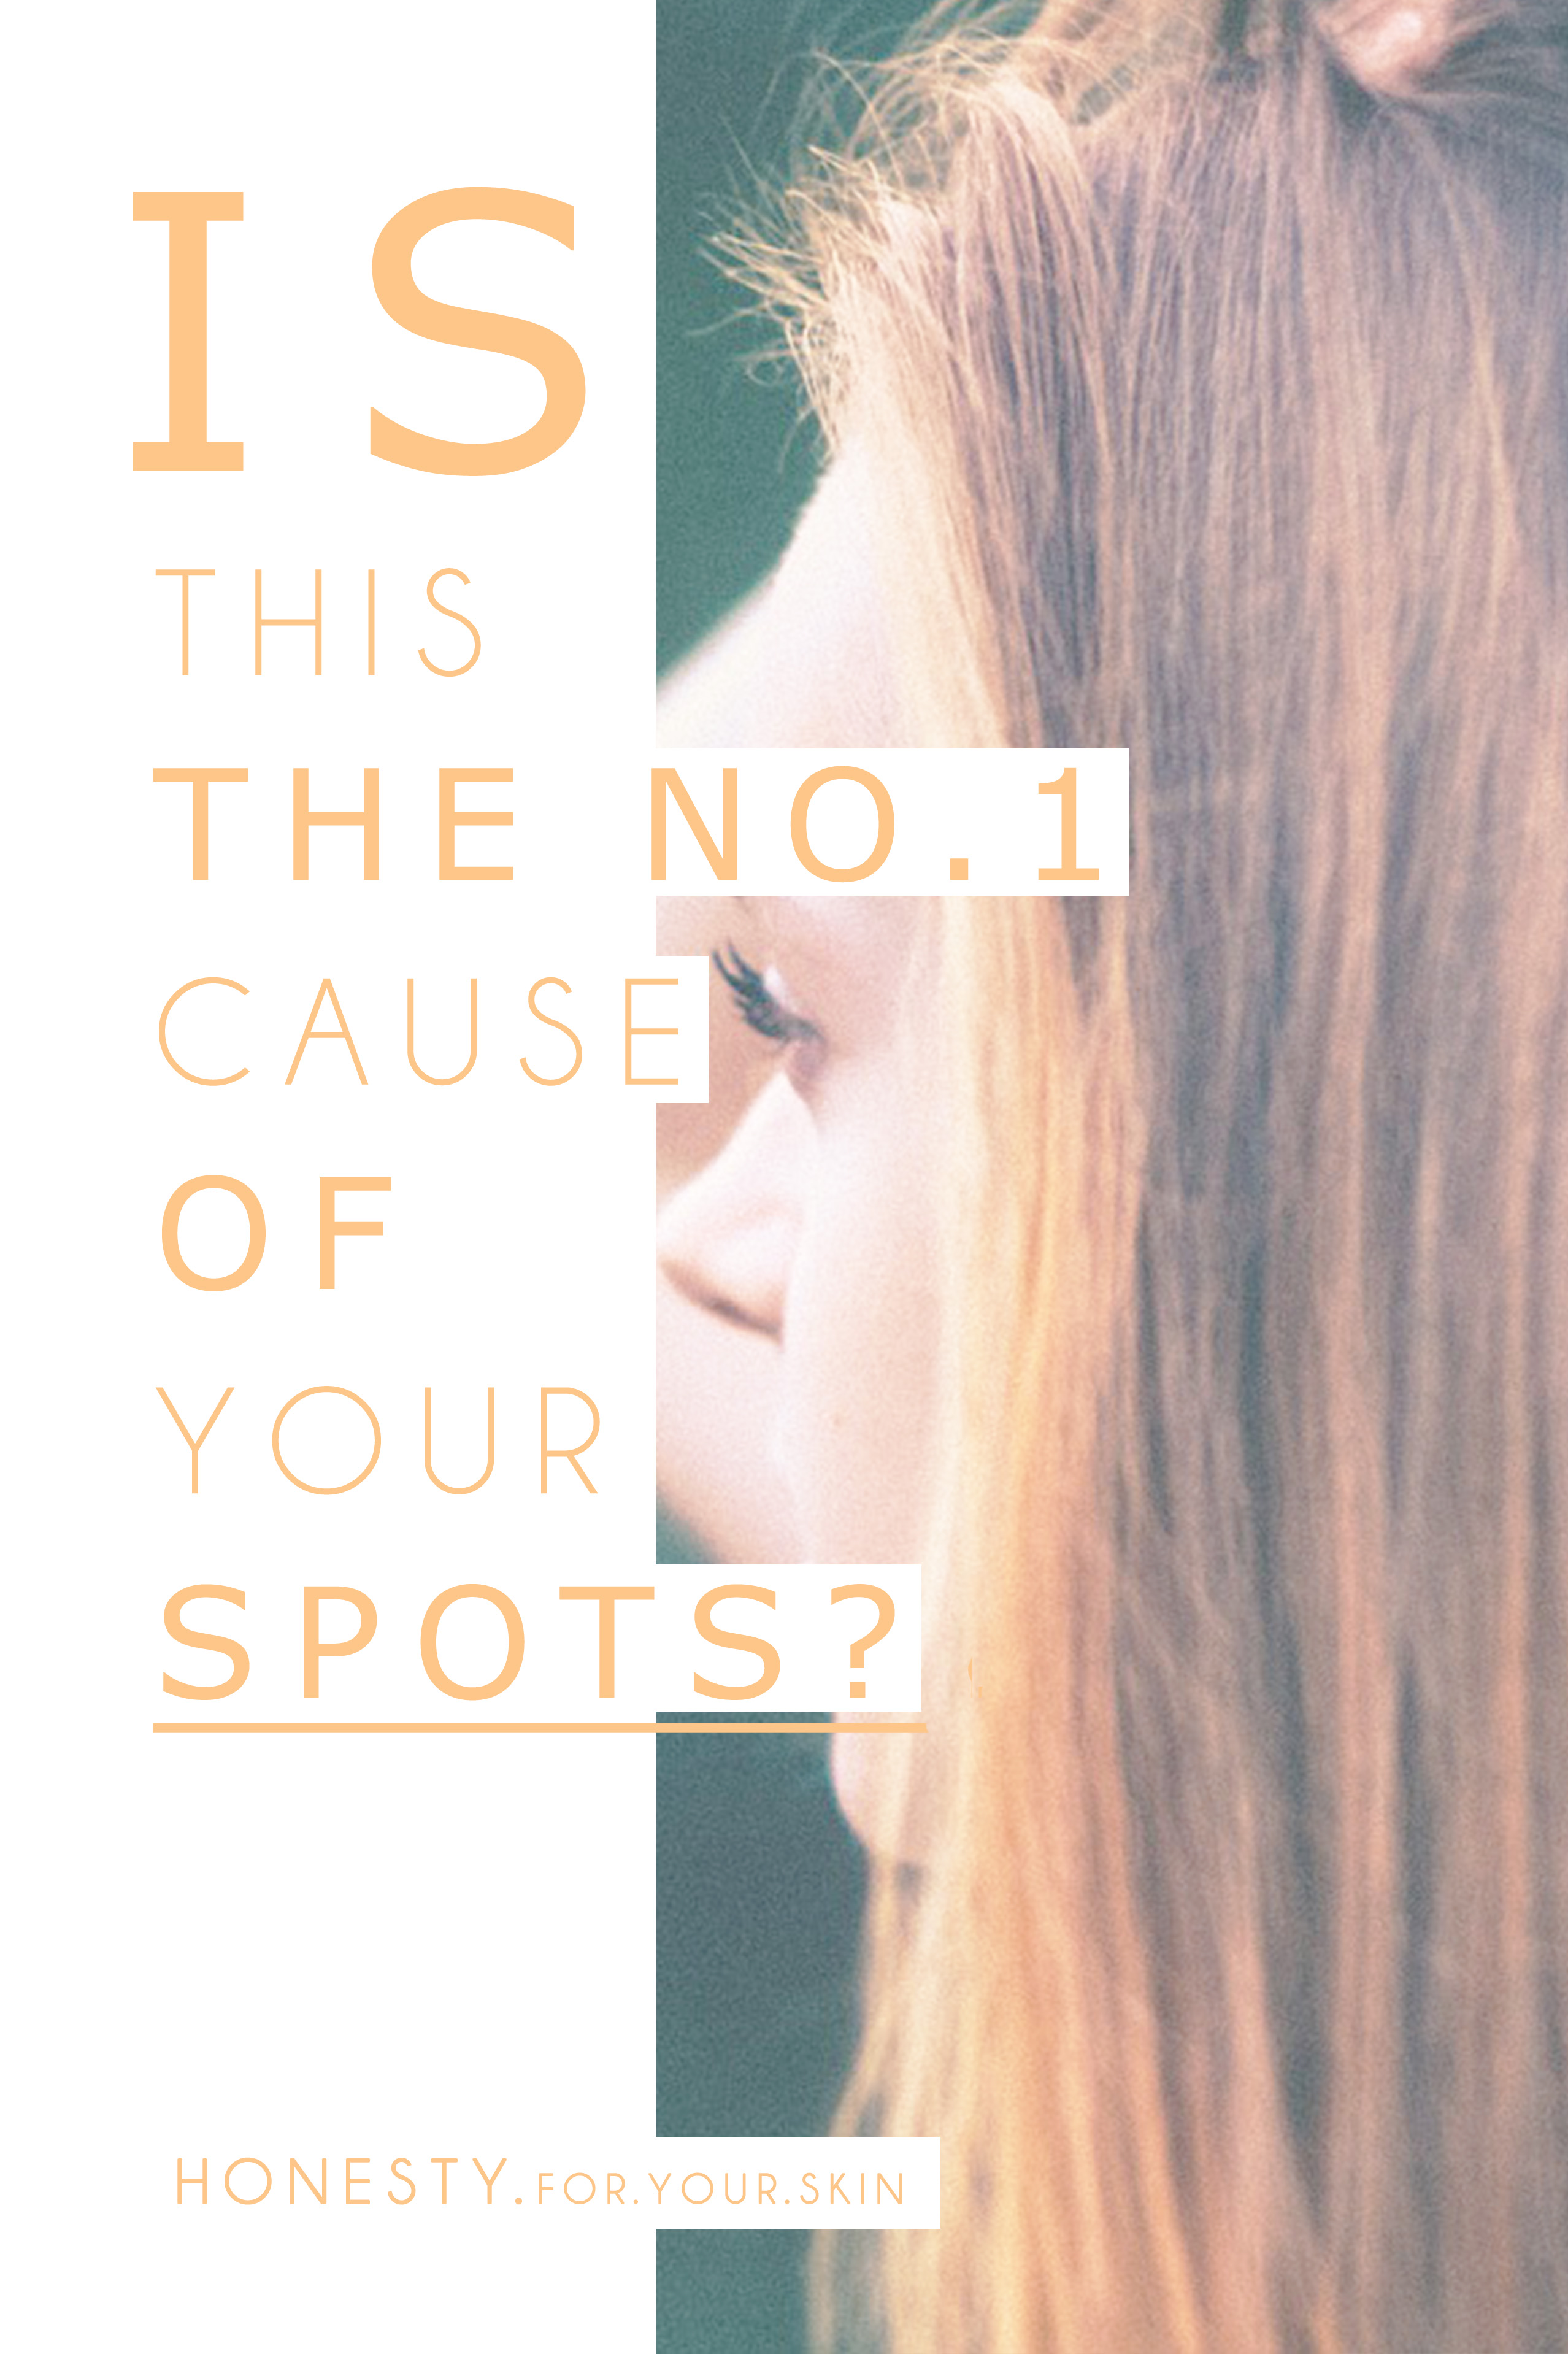 SPOTS! We all get them. Even though YOU my lovely are beautiful WITH & without them, its always nice to have a bit of power up our sleeves when it comes to controlling breakouts. There is 1 very much overlooked cause of spots that is like the river feeding your streams, and it has a VERY simple solution!